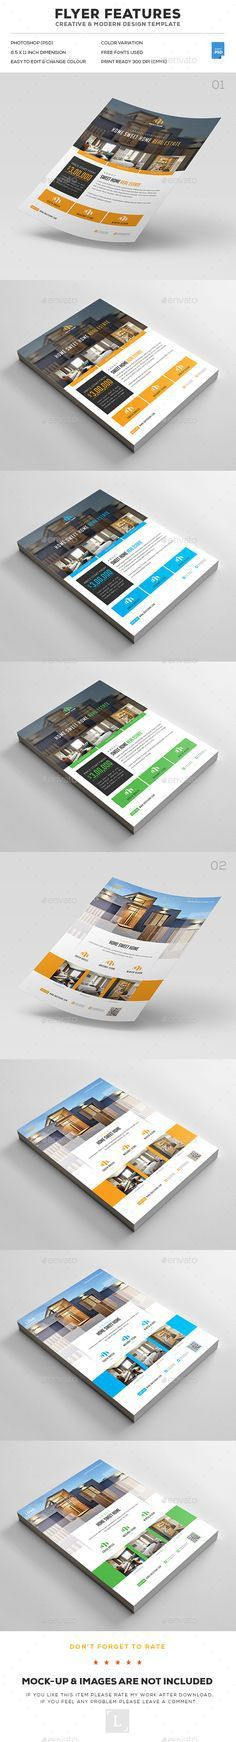 Real Estate Flyer | Real estate flyers, Real estate and Flyer printing